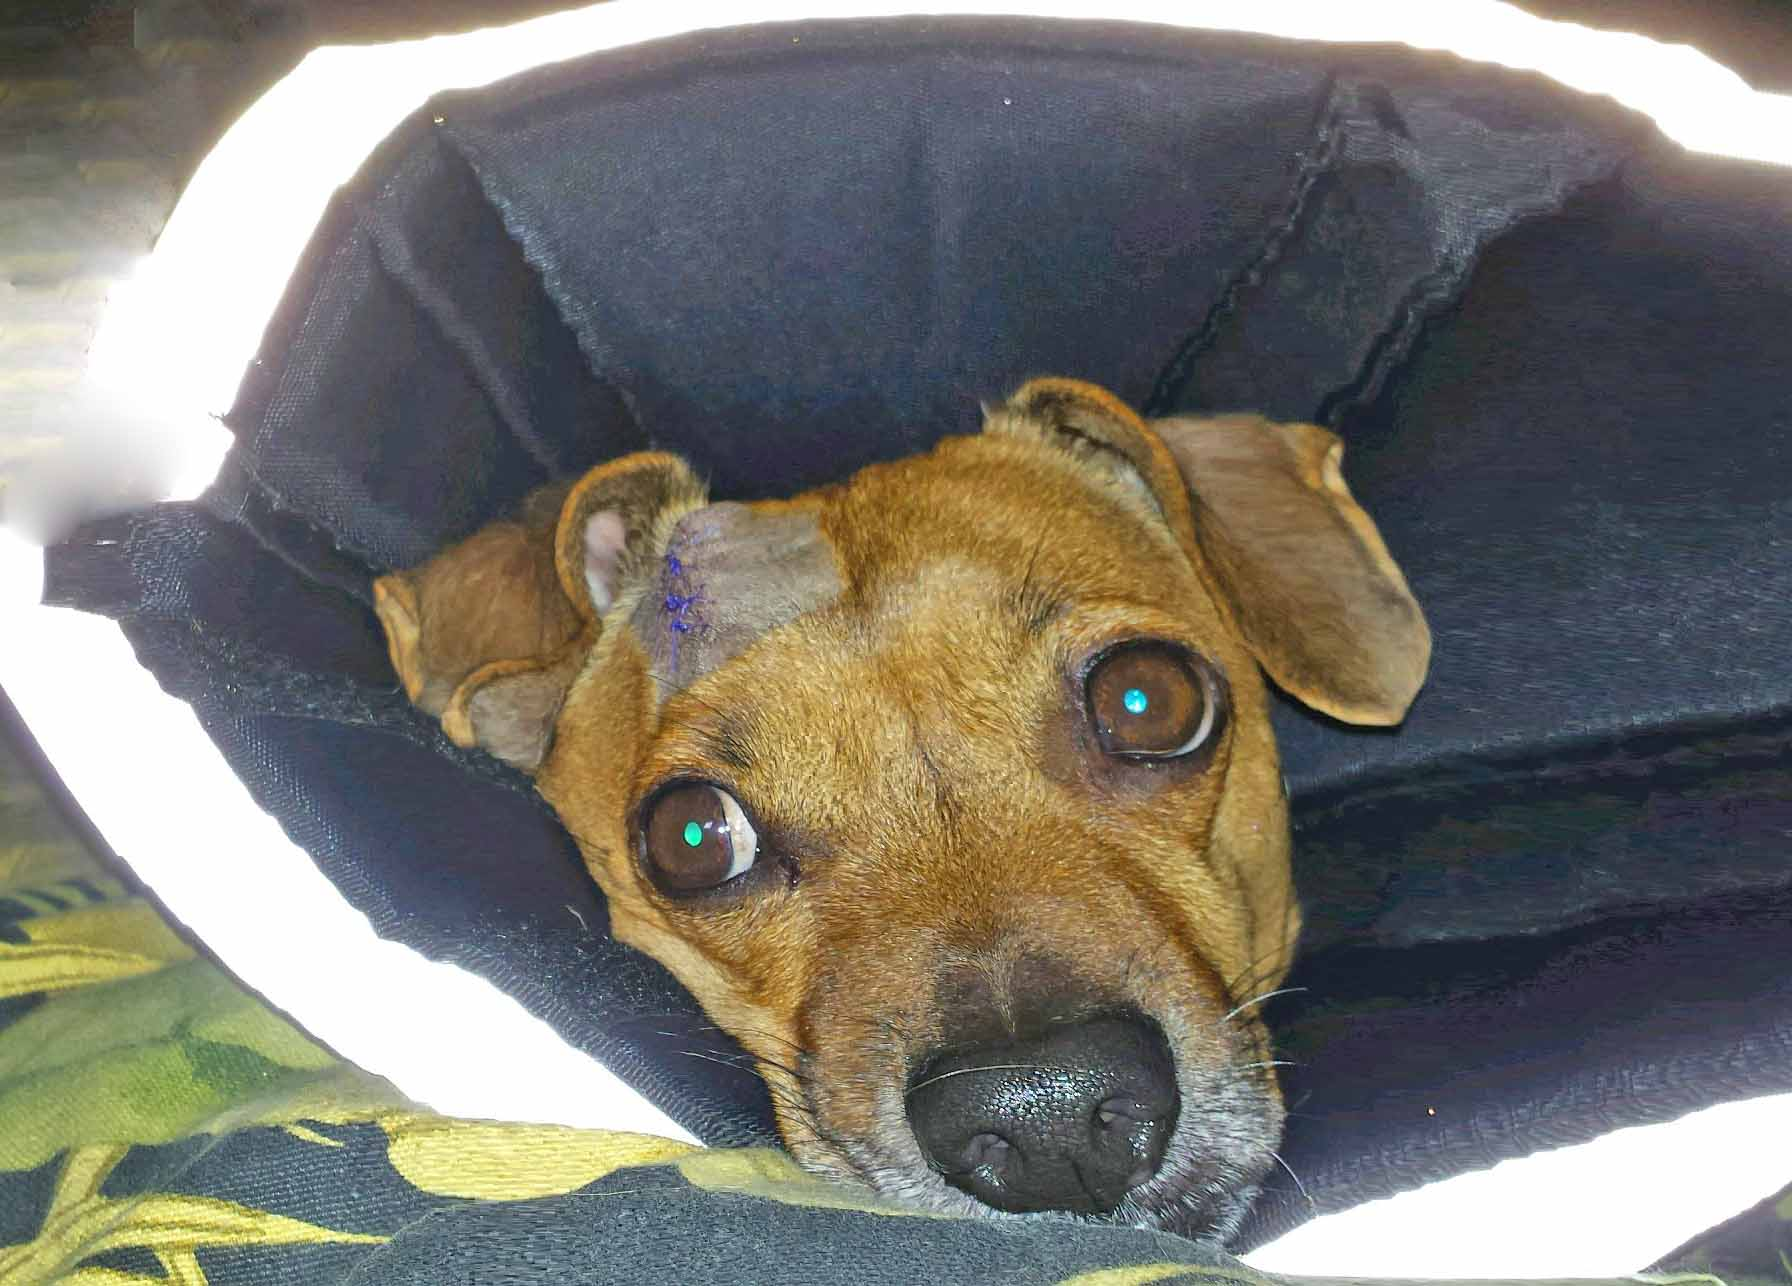 Doodle and the cone, a week after after head surgery- his eyes were back to normal. Photo: (c) Barb Ayers, DogDiary.org